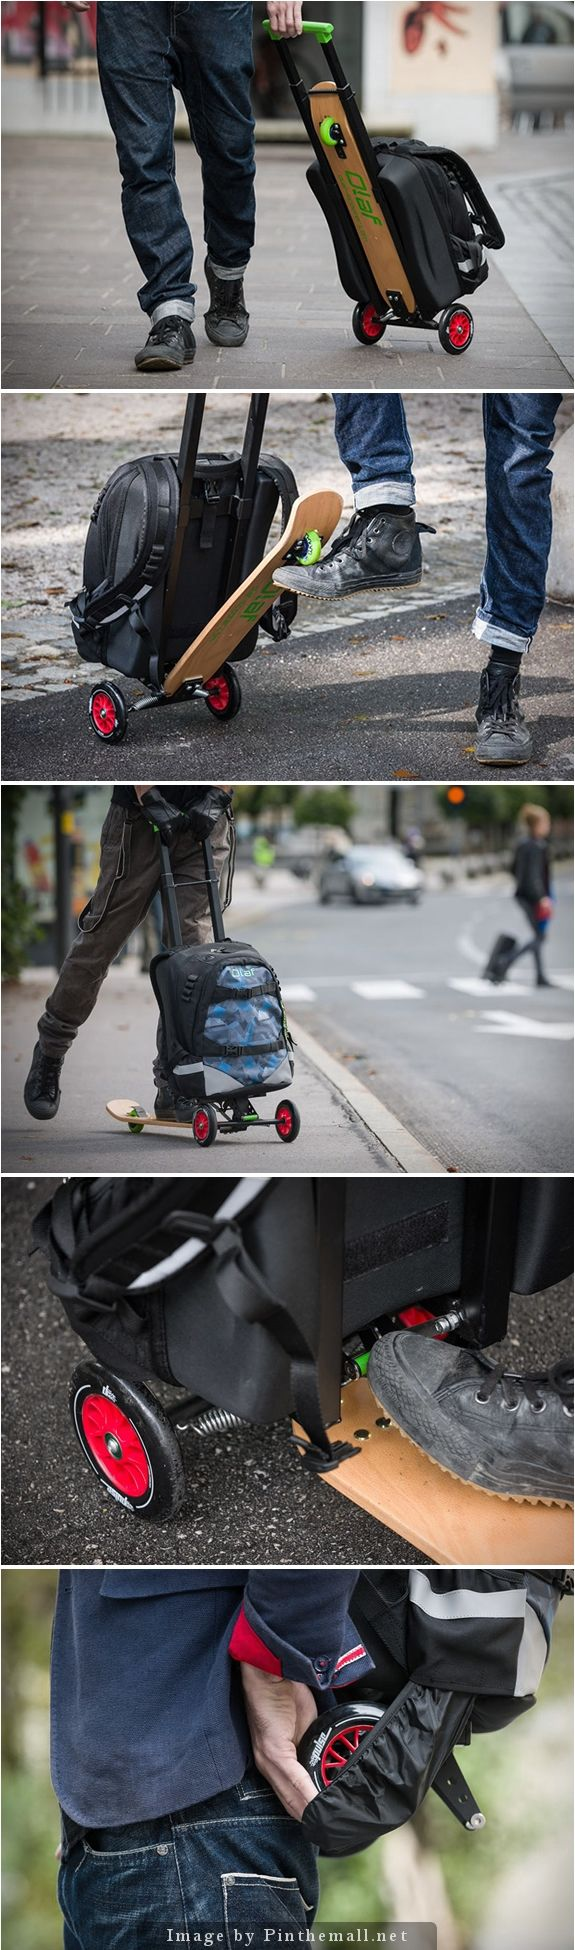 Olaf Scooter - multifunction hybrid kick-scooter | Click to visit the Kickstarter campaign.